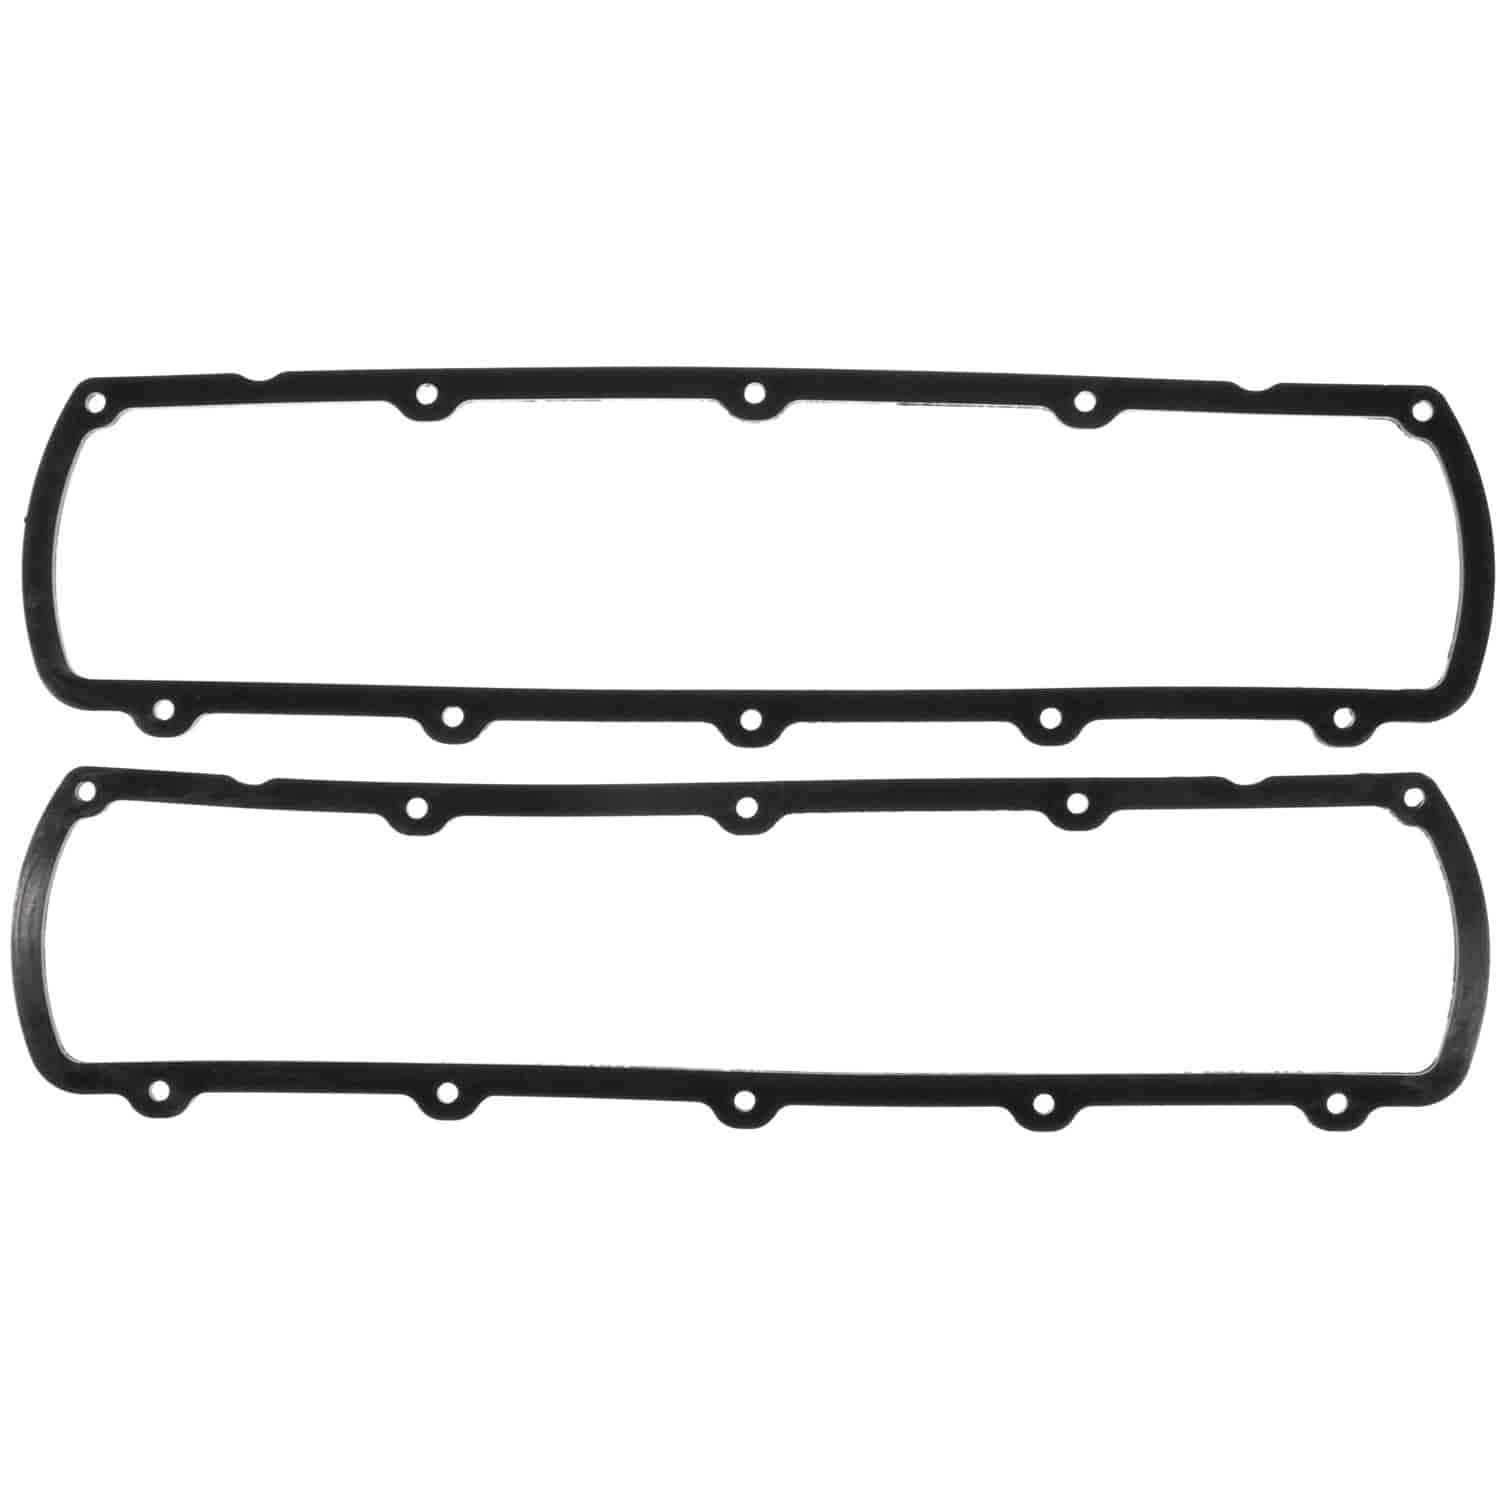 Mahle Original Vs Rt Valve Cover Gasket Set